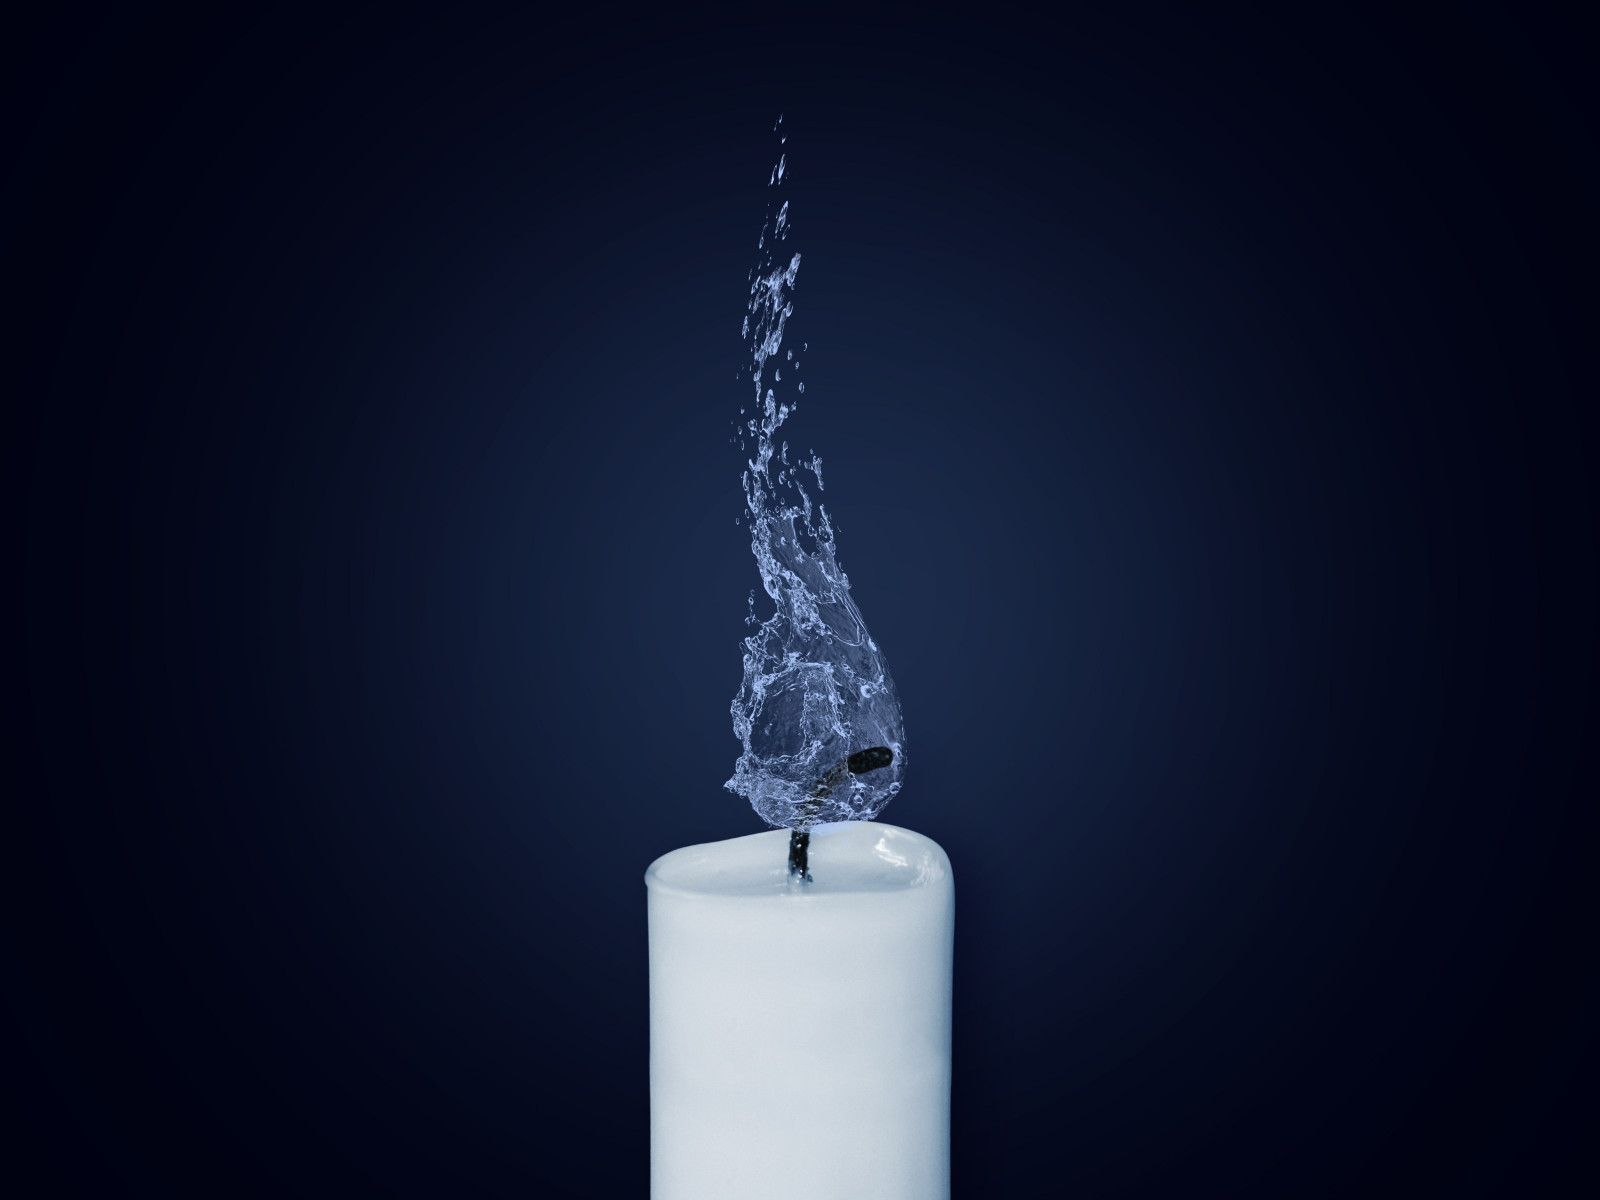 Water Flame. Candlelight wallpaper 1600x1200